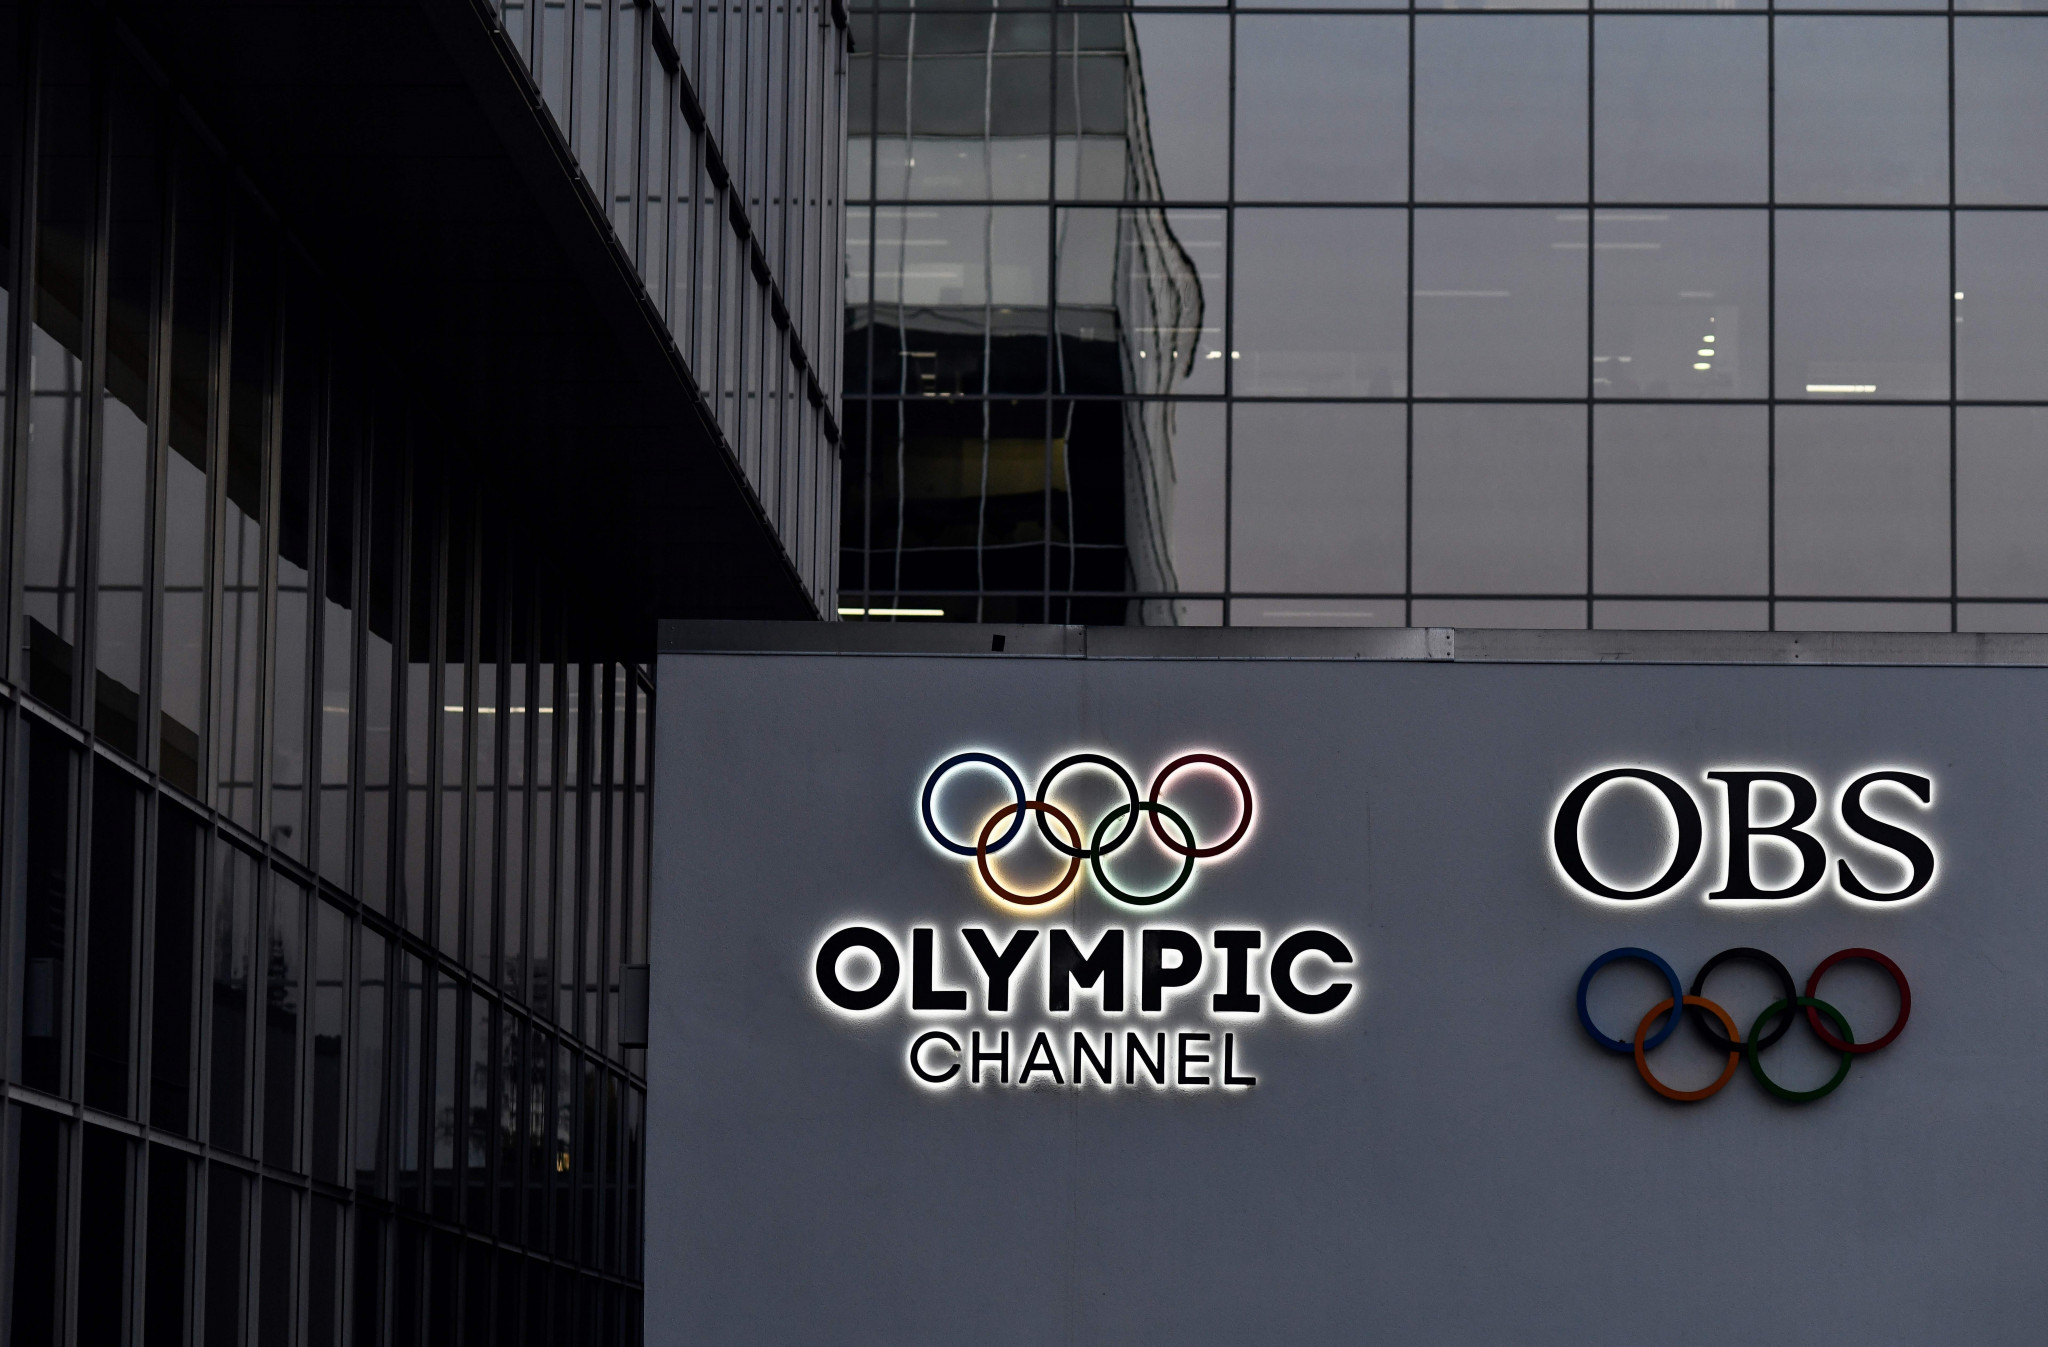 Exclusive: OBS and Olympic Channel staff asked to work from home to combat coronavirus